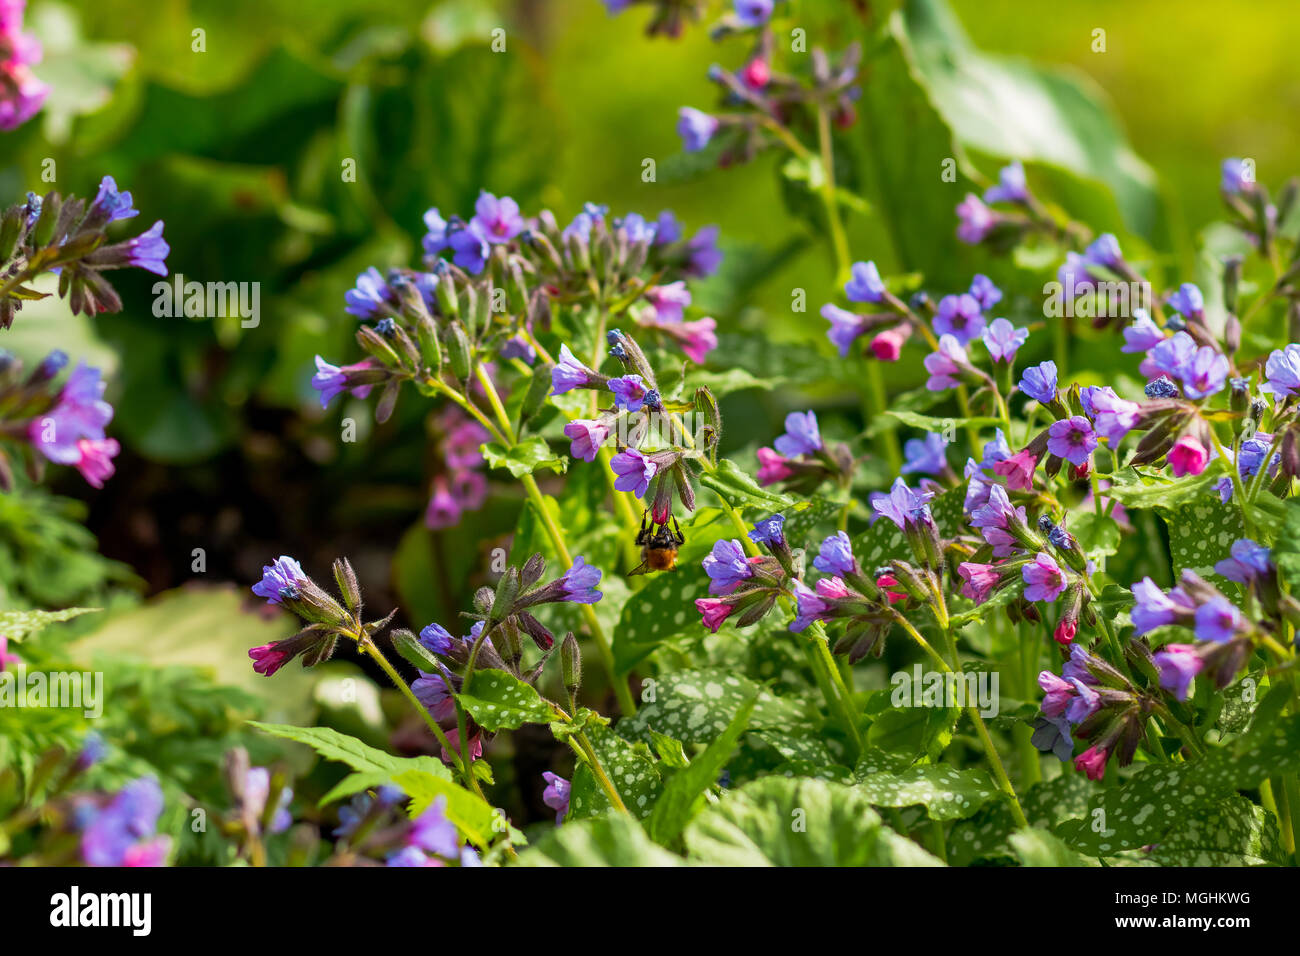 Colorful spring forest flowers and blue flowers unspotted colorful spring forest flowers and blue flowers unspotted lungwort or suffolk lungwort pulmonaria obskura in the early spring izmirmasajfo